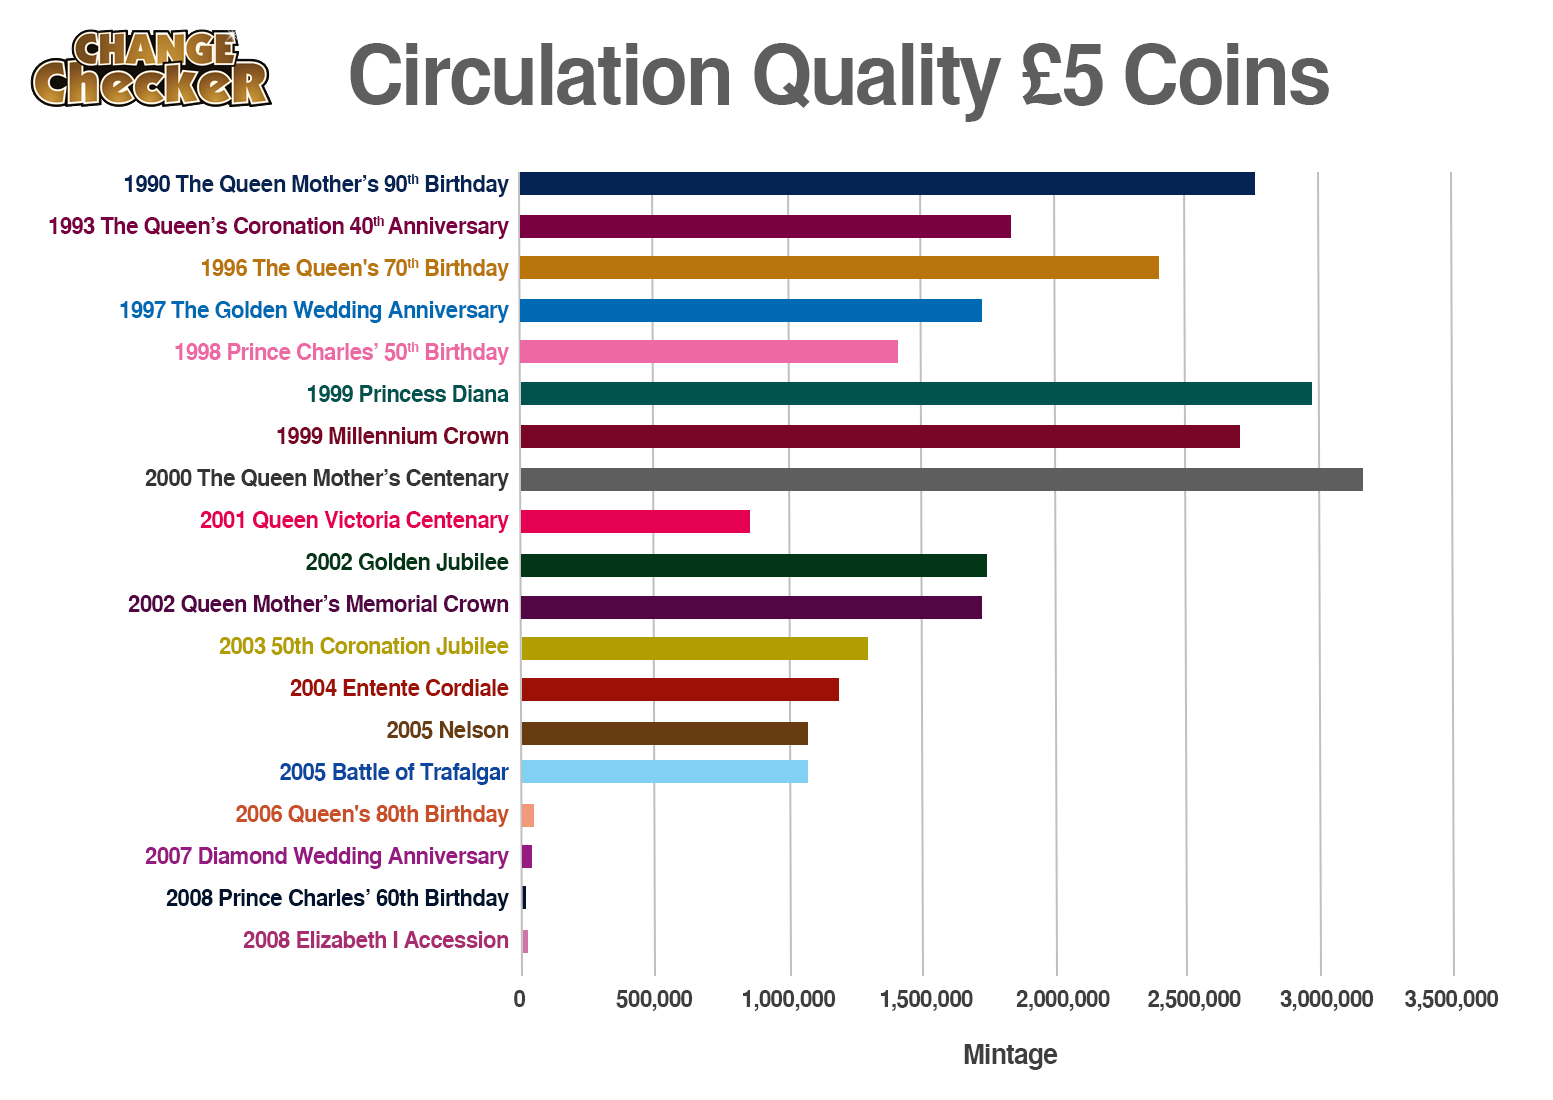 circulation quality 5 - How rare is my £5 coin?